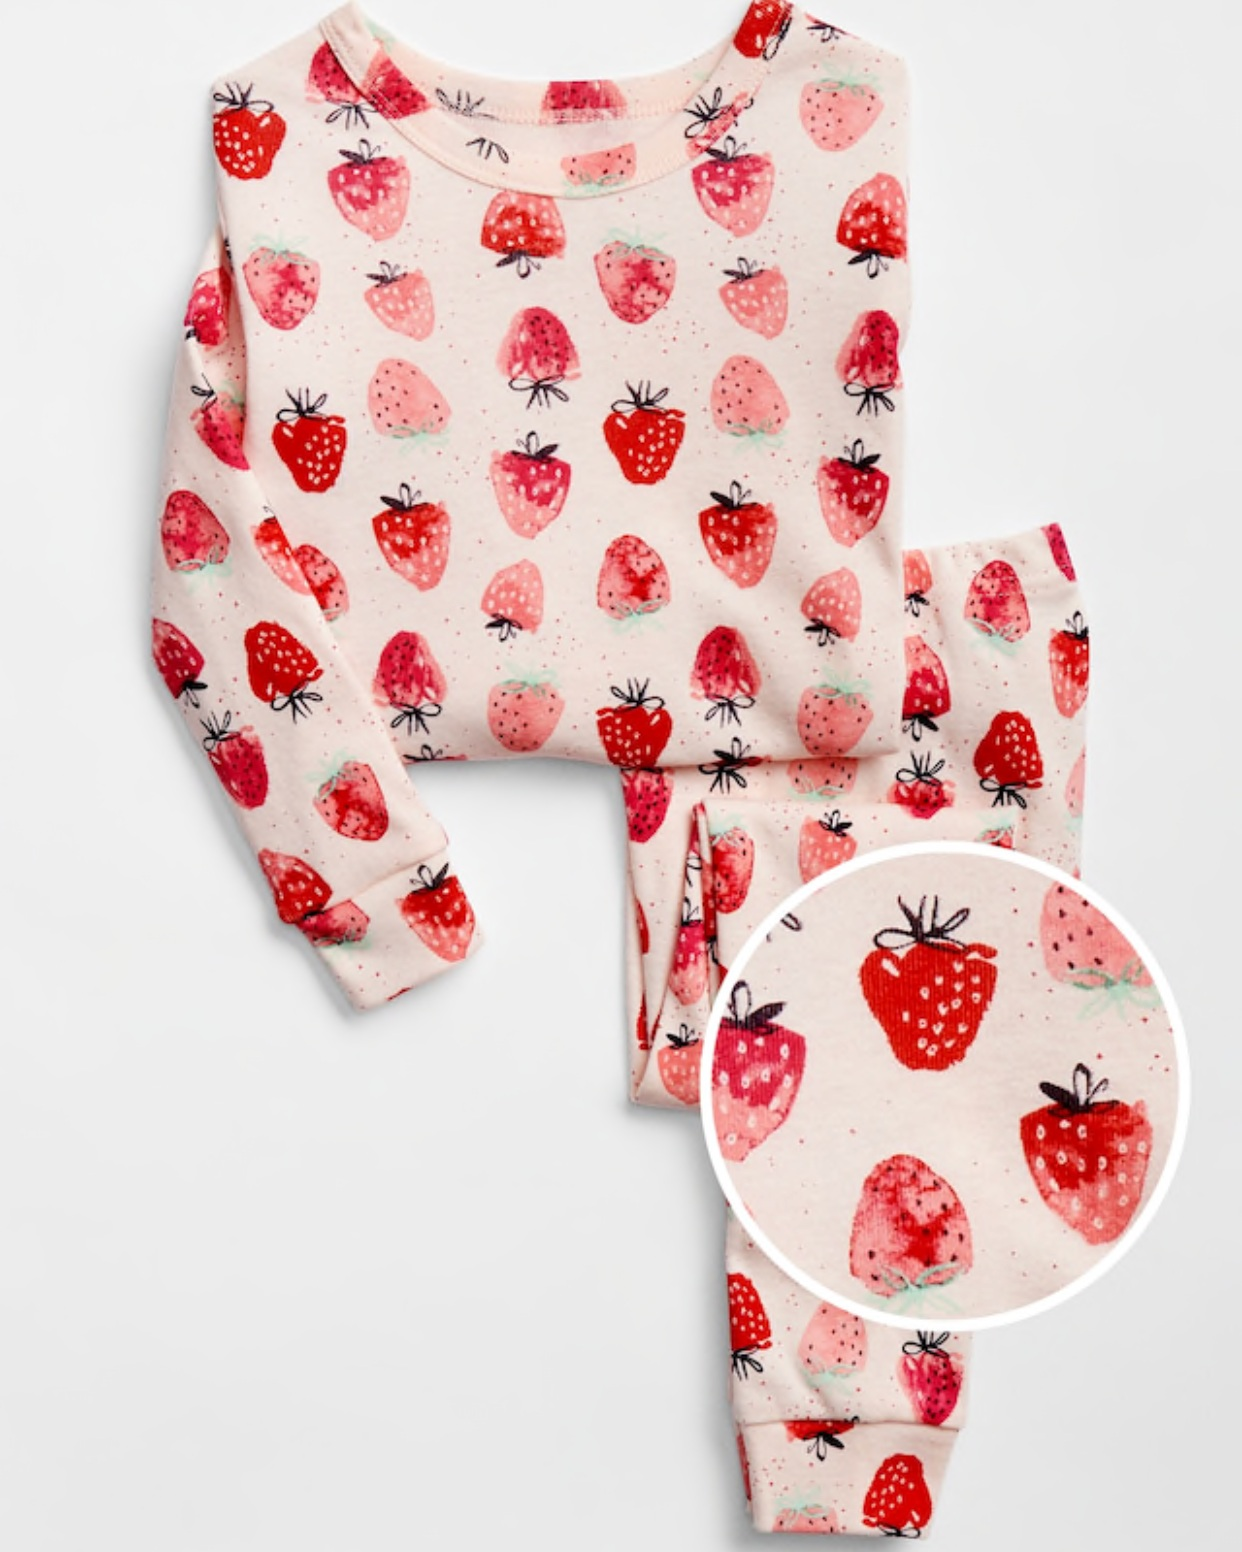 - On sale for $14! Can't resist fruit covered pj's!Find them here.